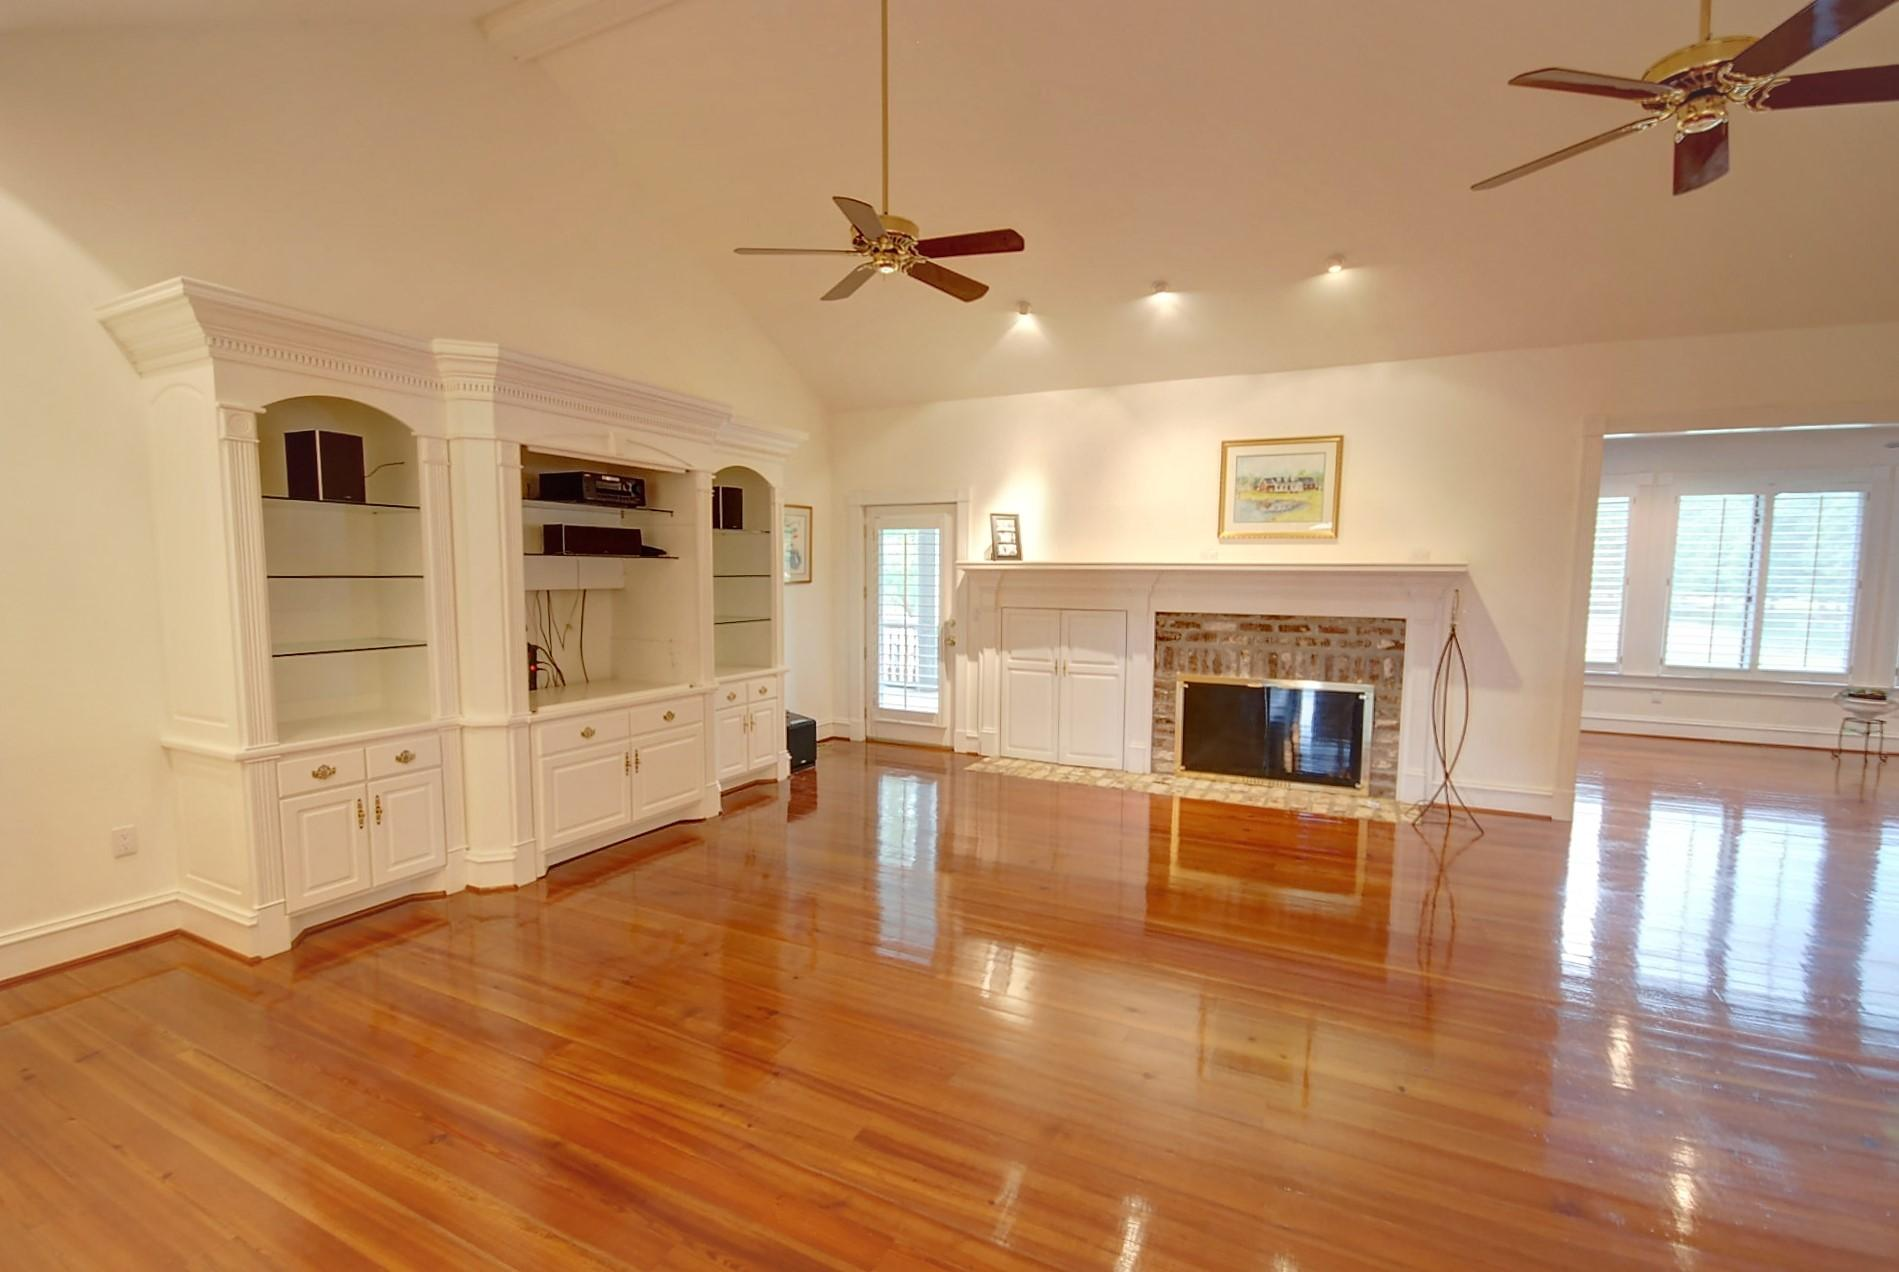 Home for sale 147 Lake Drive, Summerville, SC